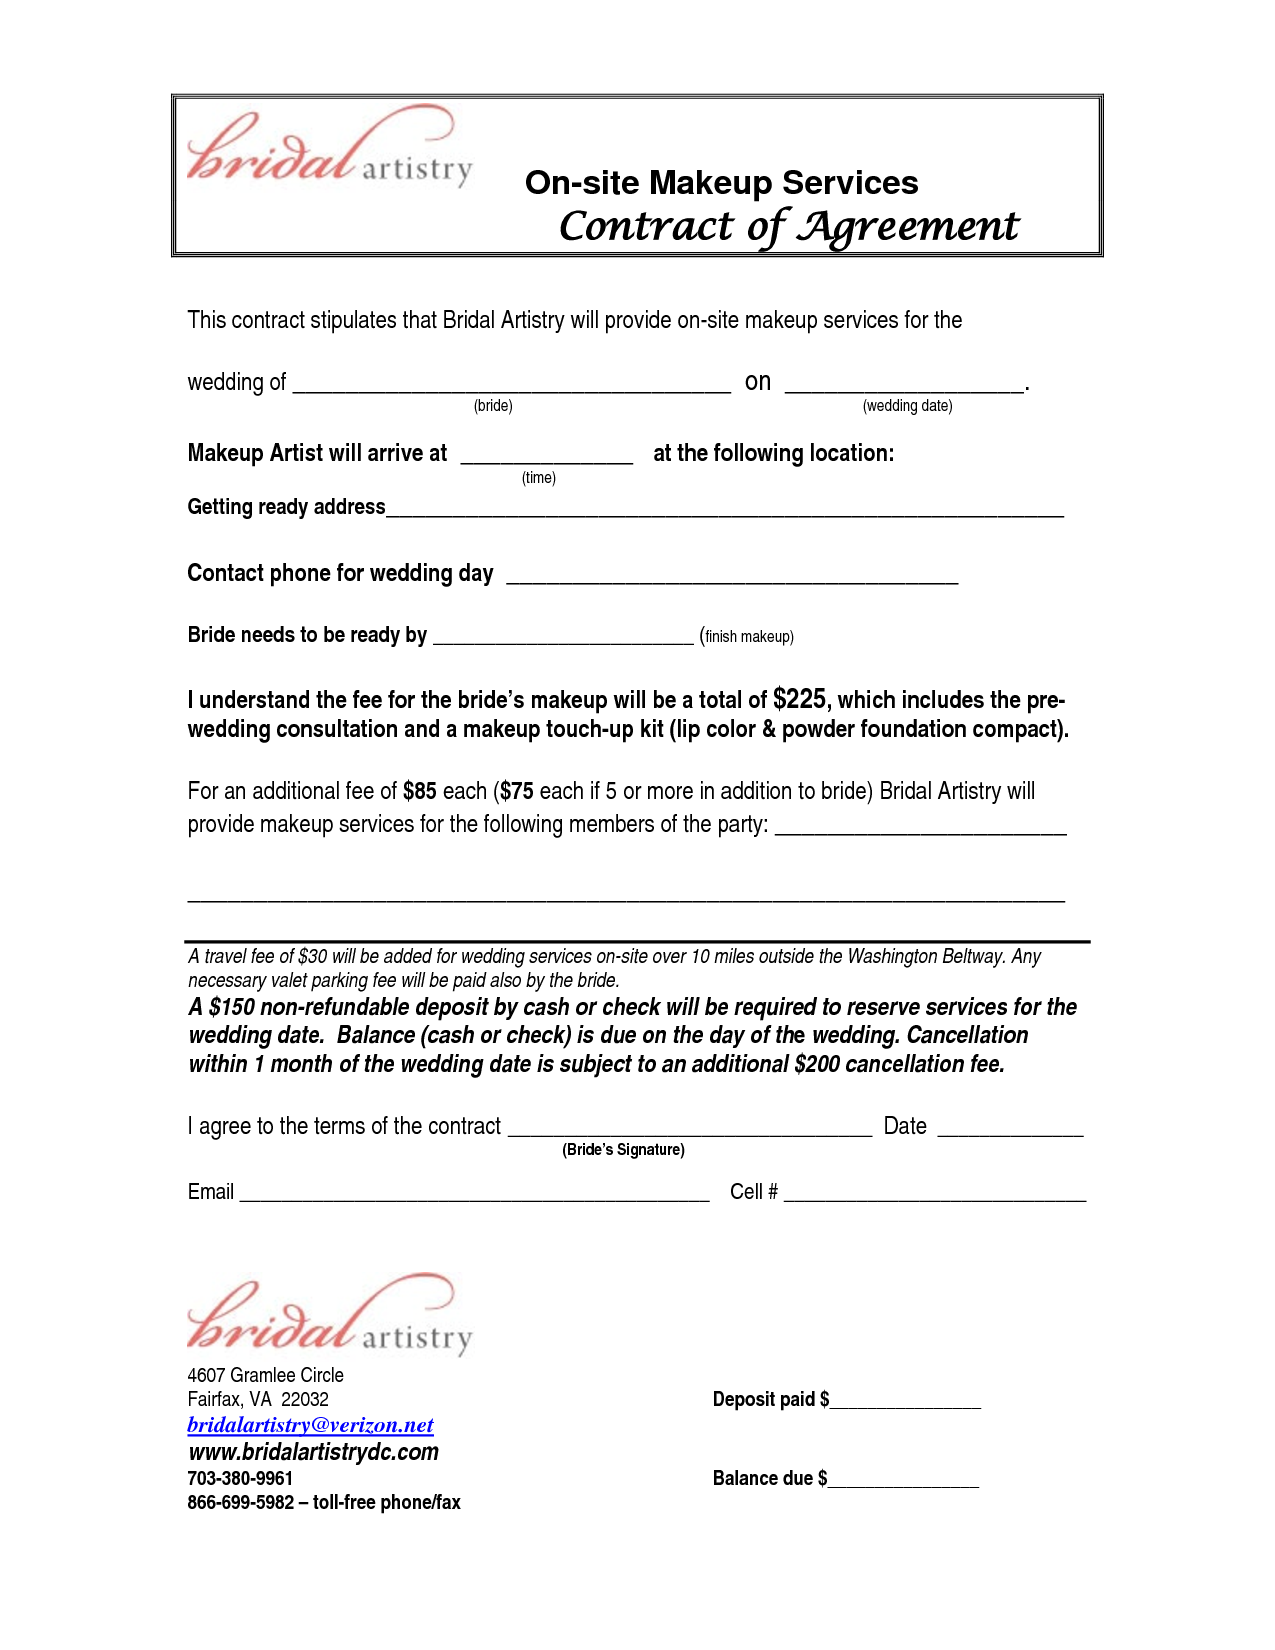 Bridalhaircotract Site Makeup Services Contract Agreement This